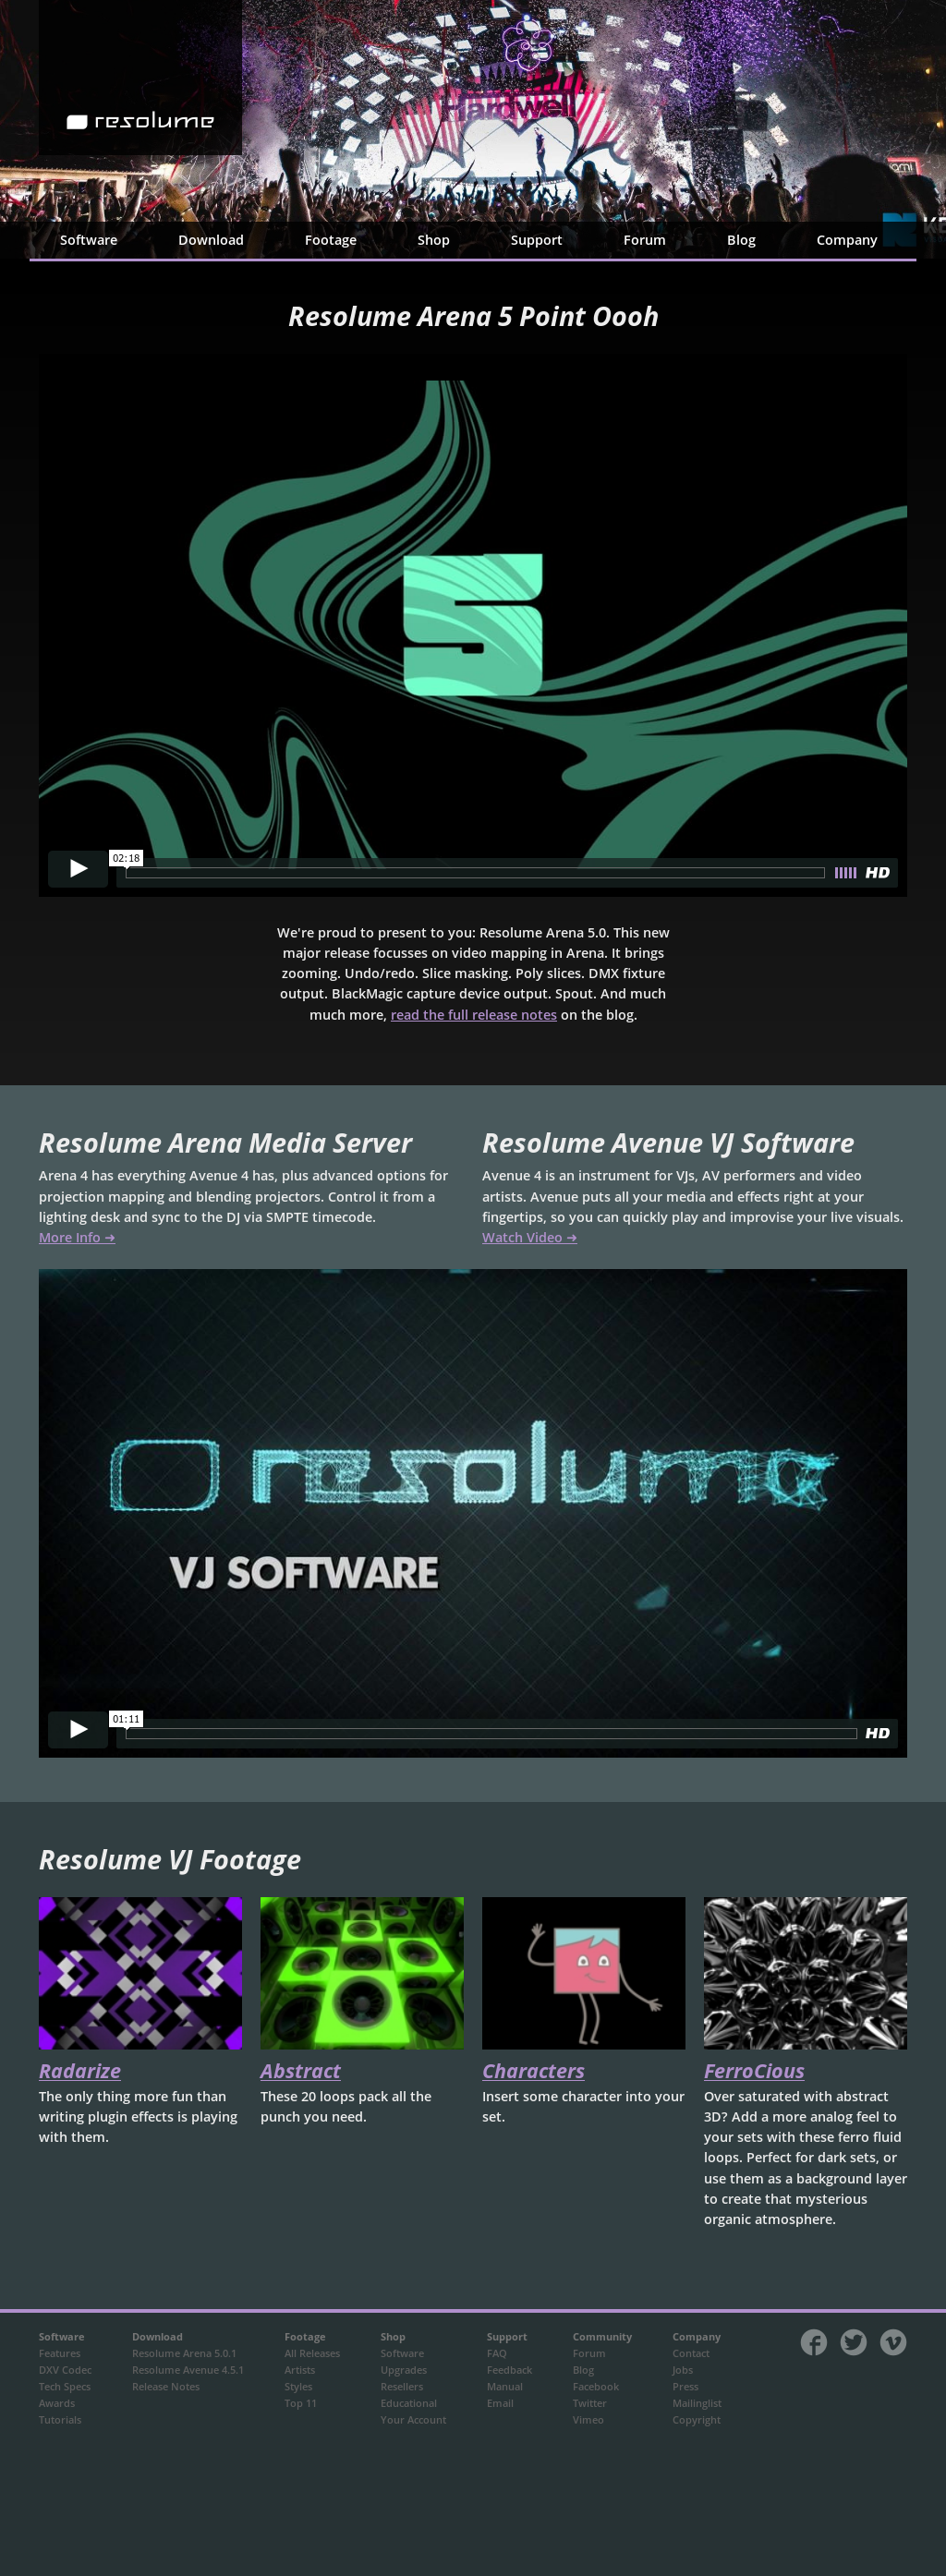 Owler Reports - Resolume Vj Software posted a video